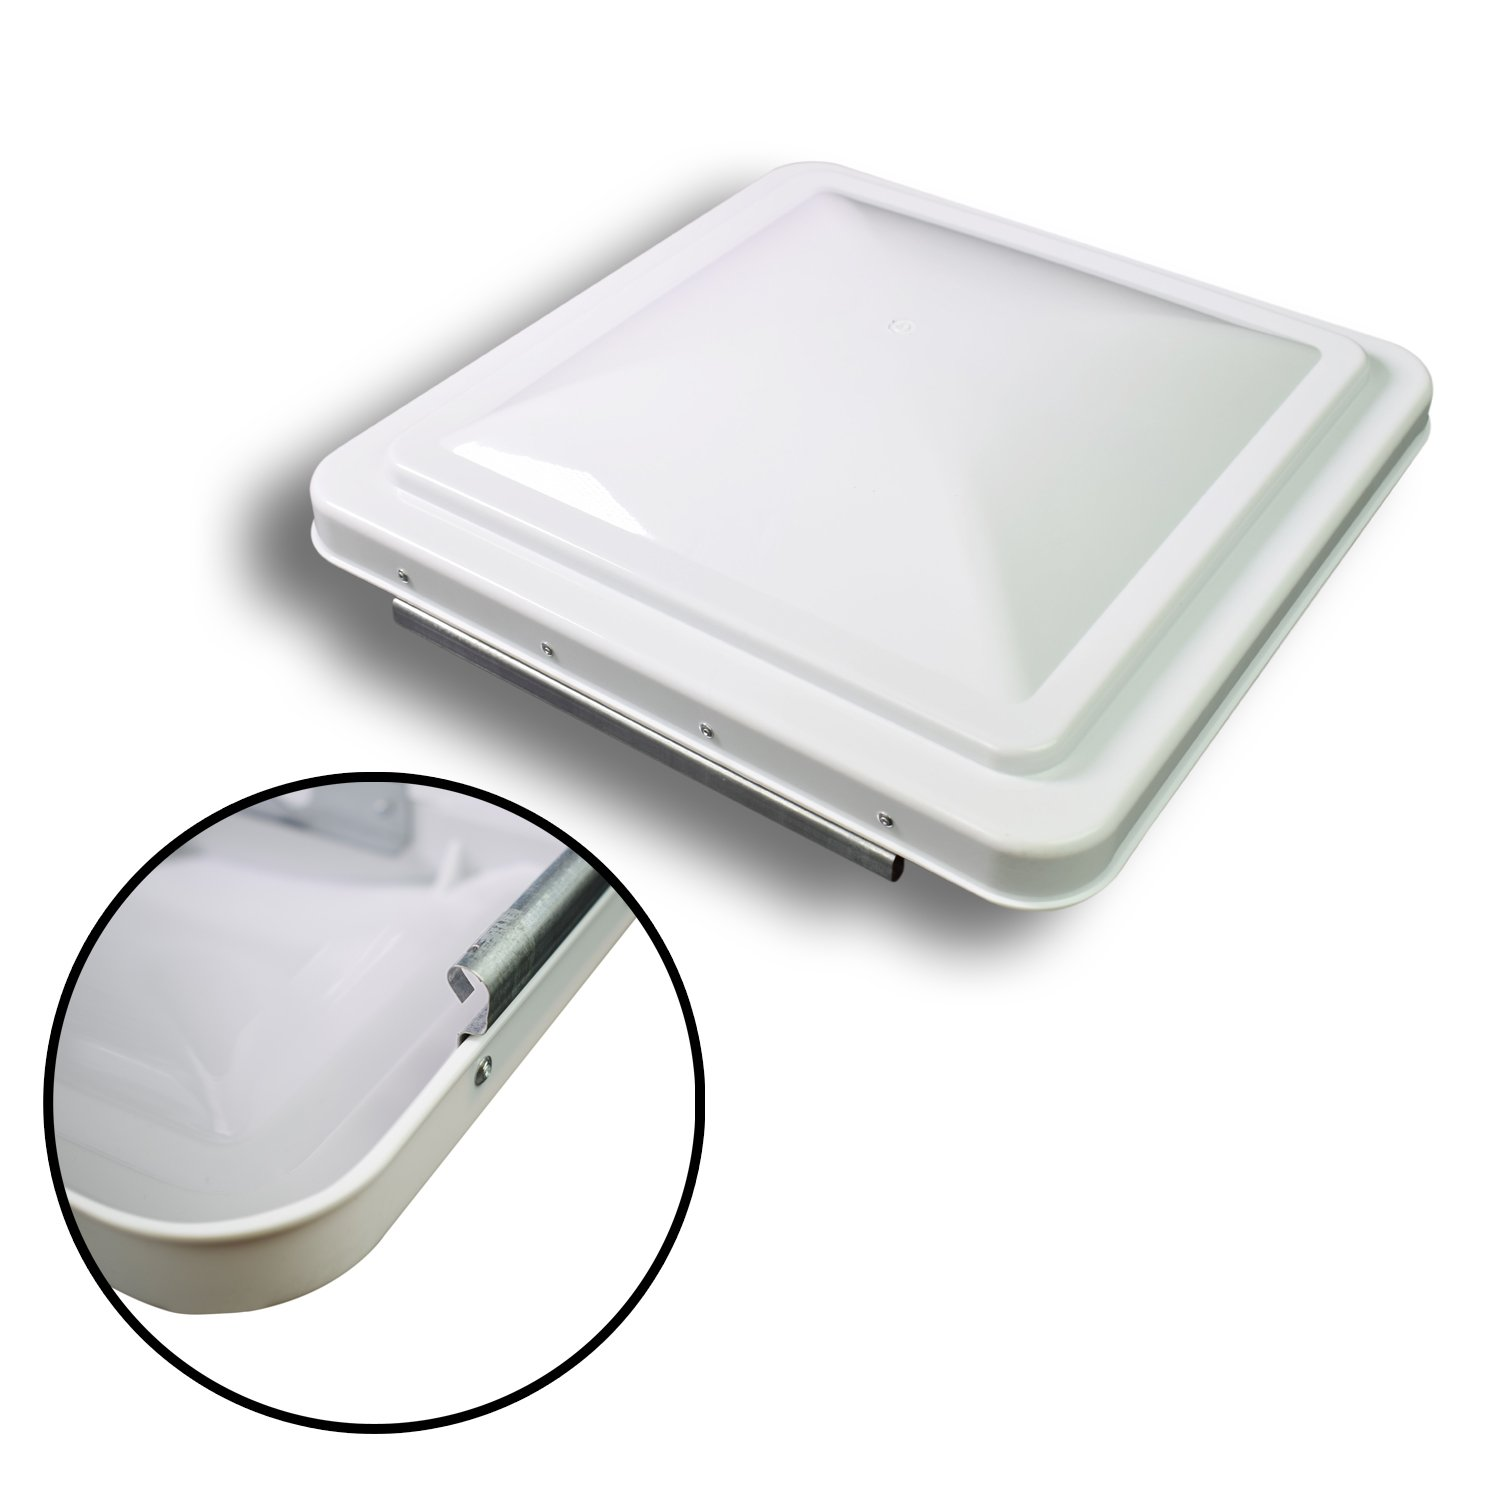 Leisure 14 Inch RV Roof Vent Cover Universal Replacement Vent Lid White for Camper Trailer Motorhome by Leisure